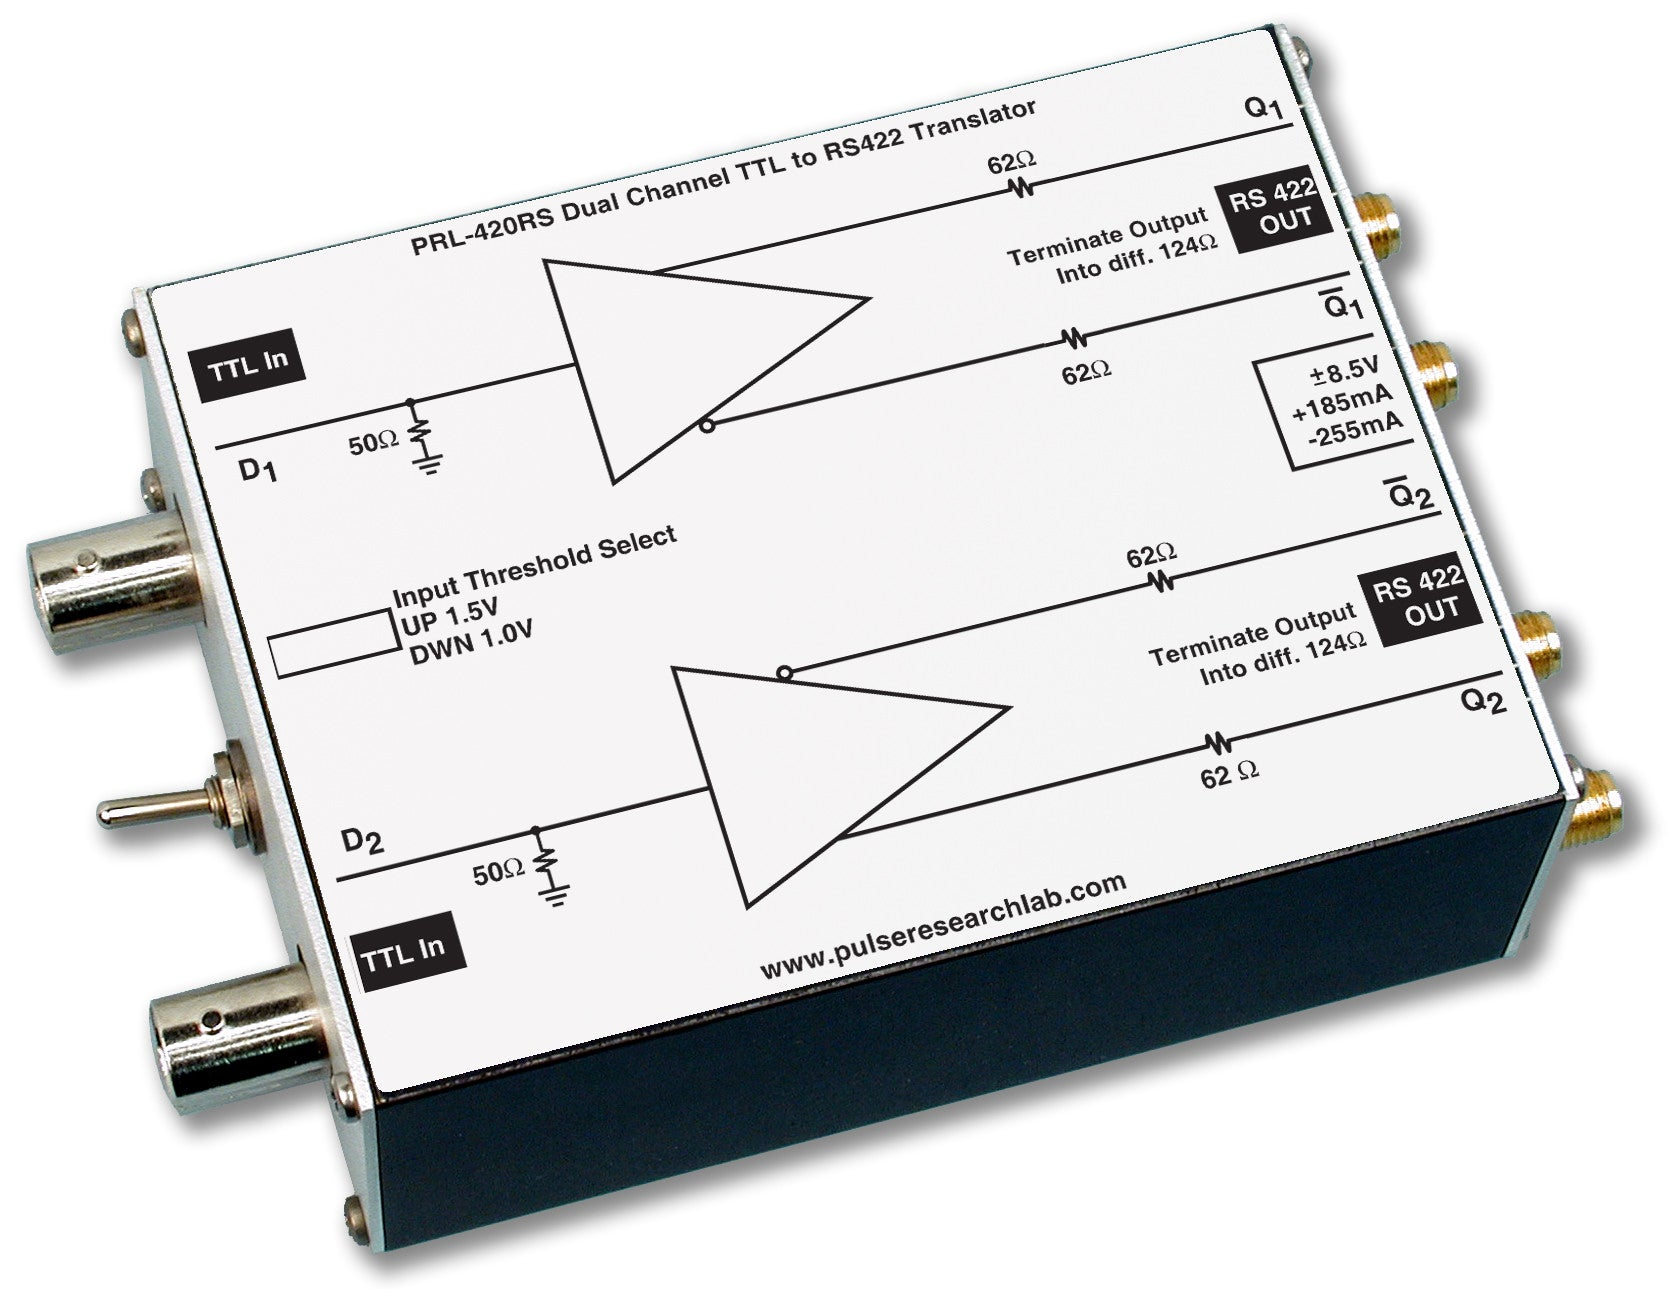 2 Channel Ttl To Rs 422 Logic Level Translator Pulse Research Diagram Product Image